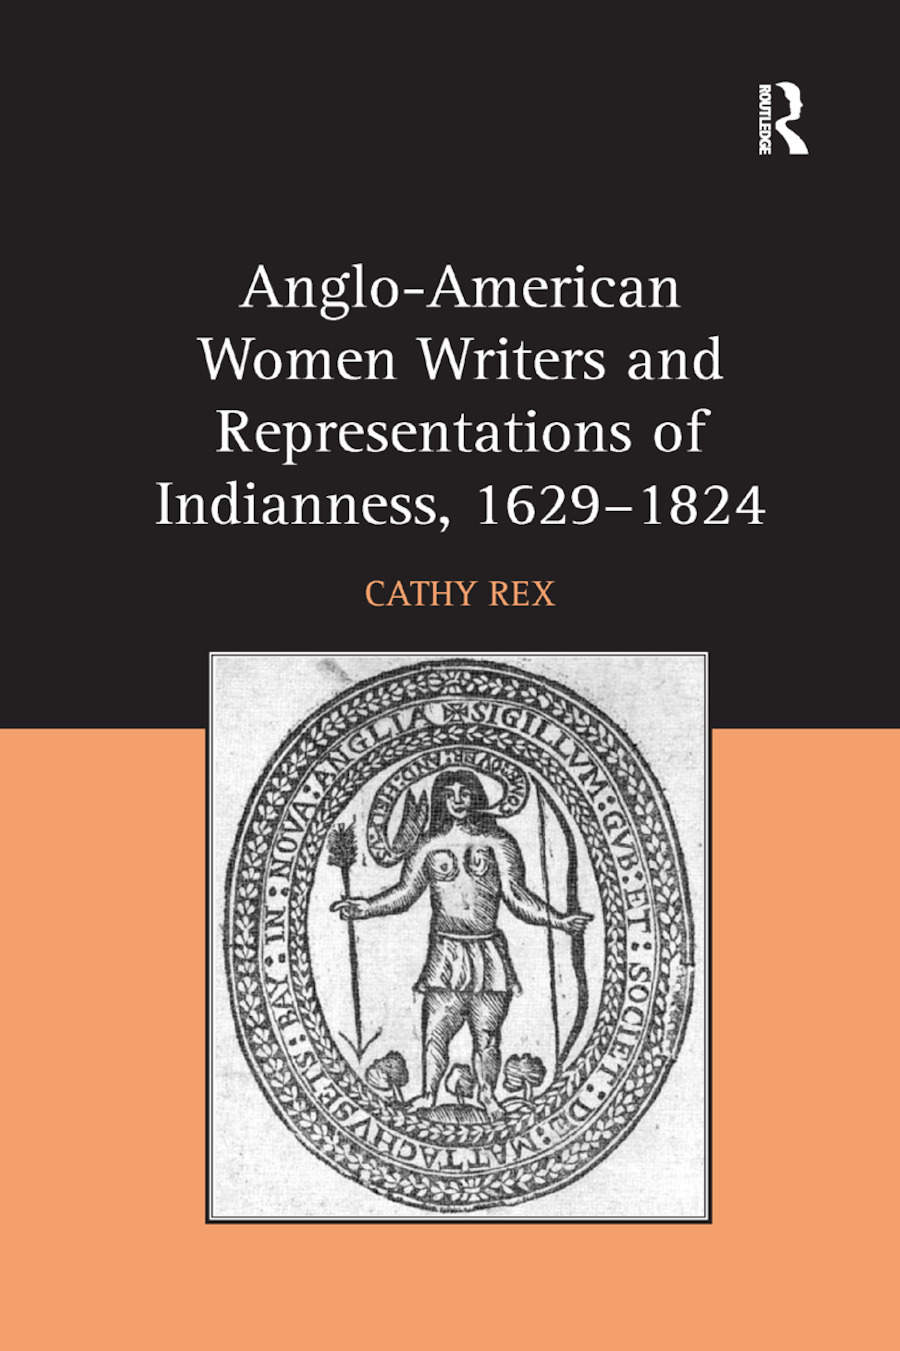 Anglo-American Women Writers and Representations of Indianness, 1629-1824 book cover